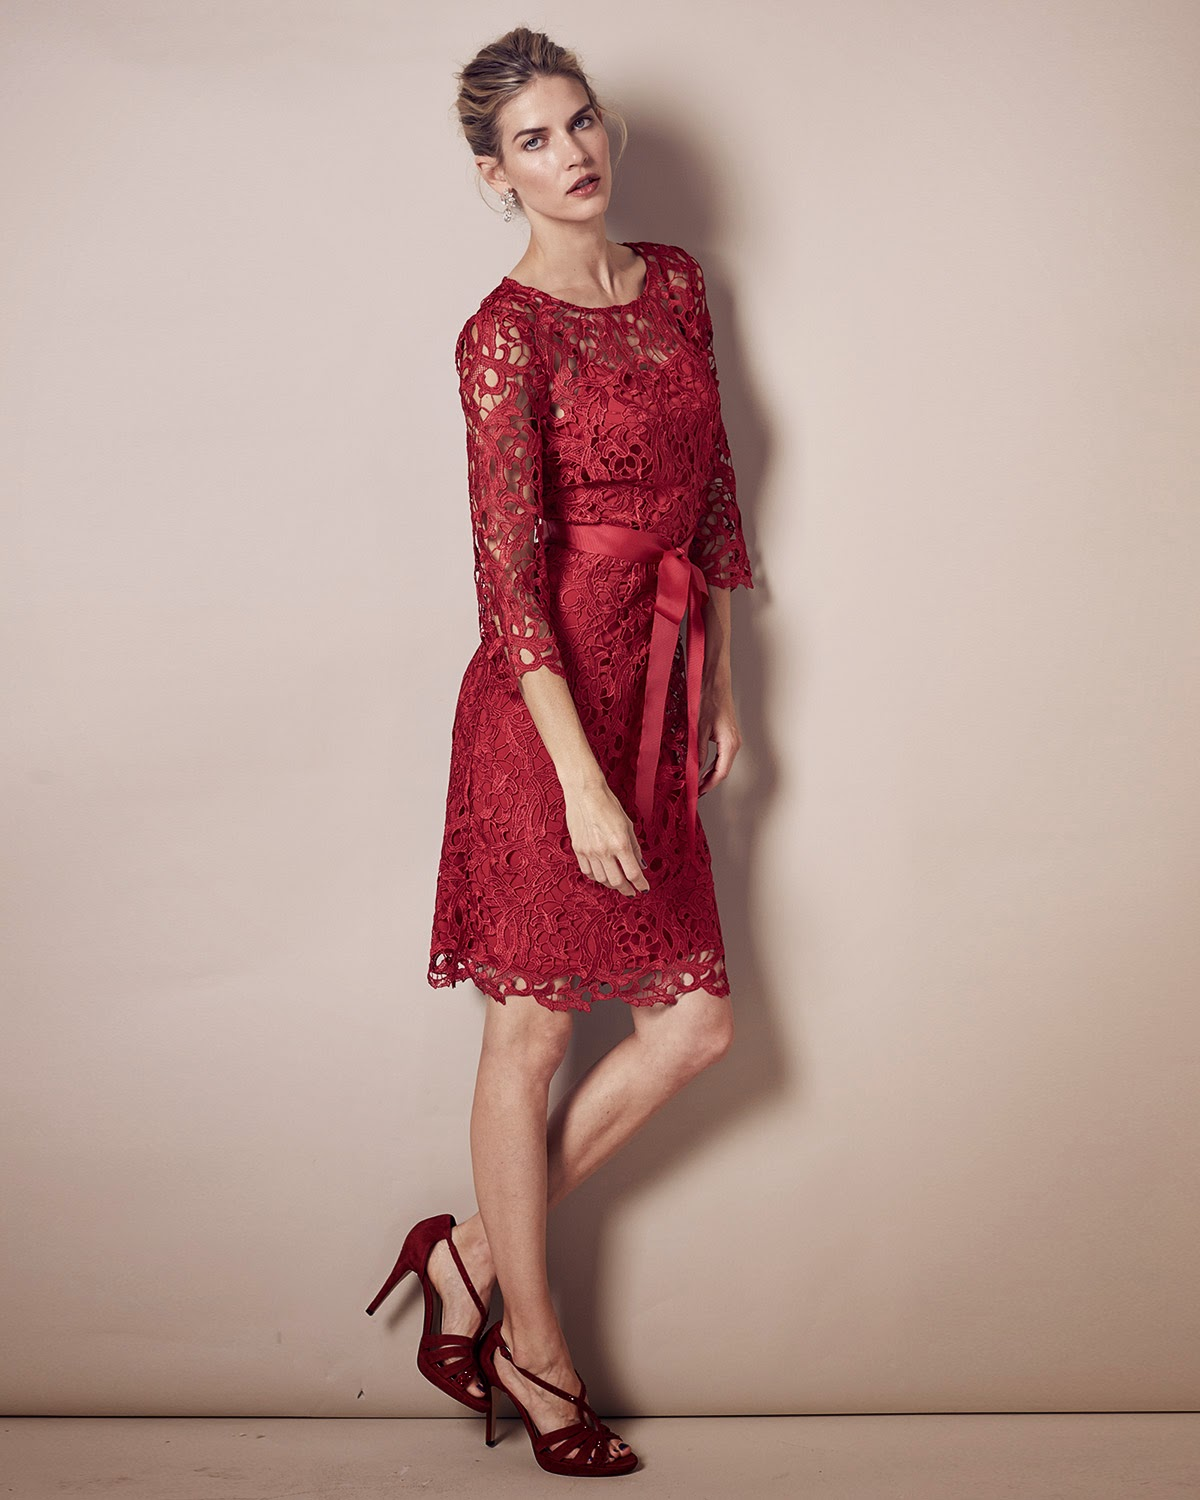 fashion for linda christmas party dress 2014 red phase